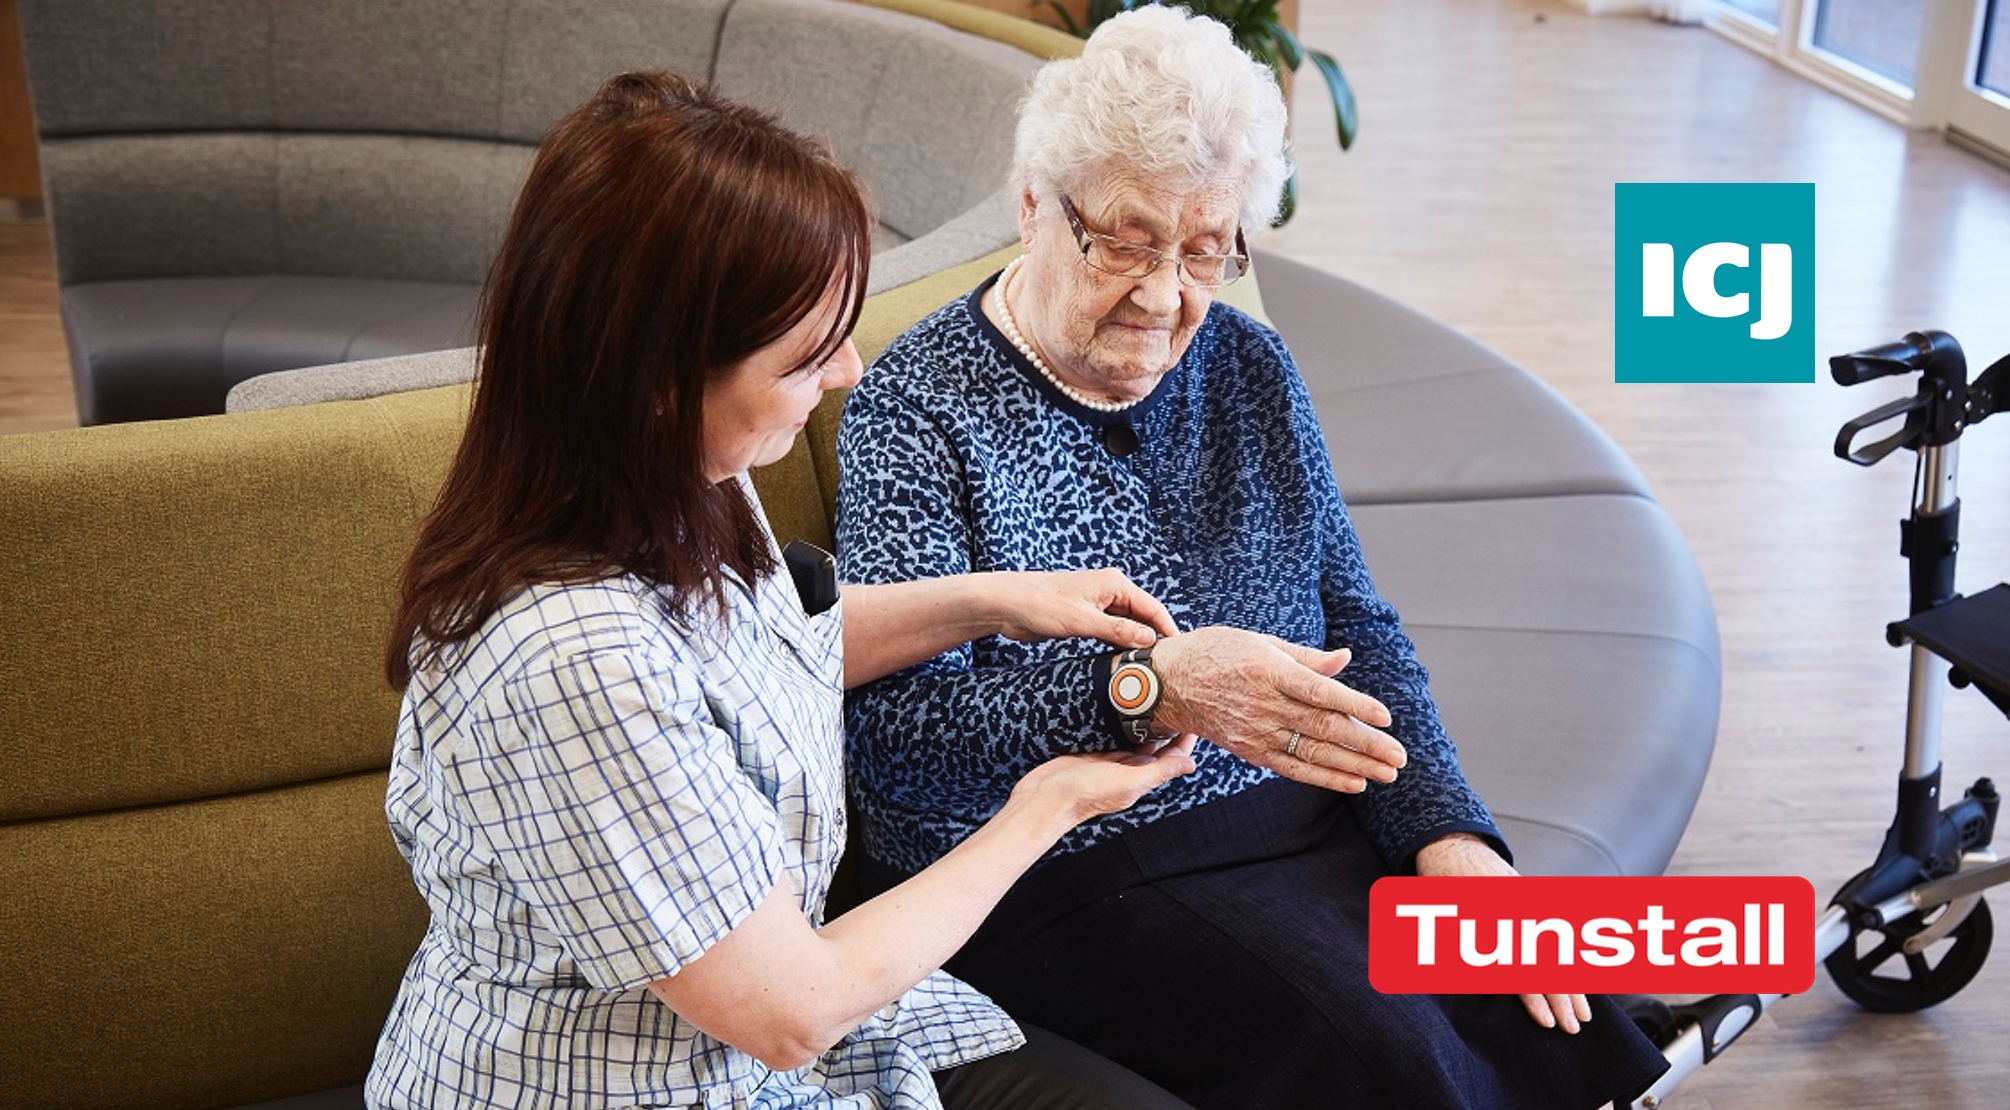 Revolutionary nurse call system supports care homes during pandemic